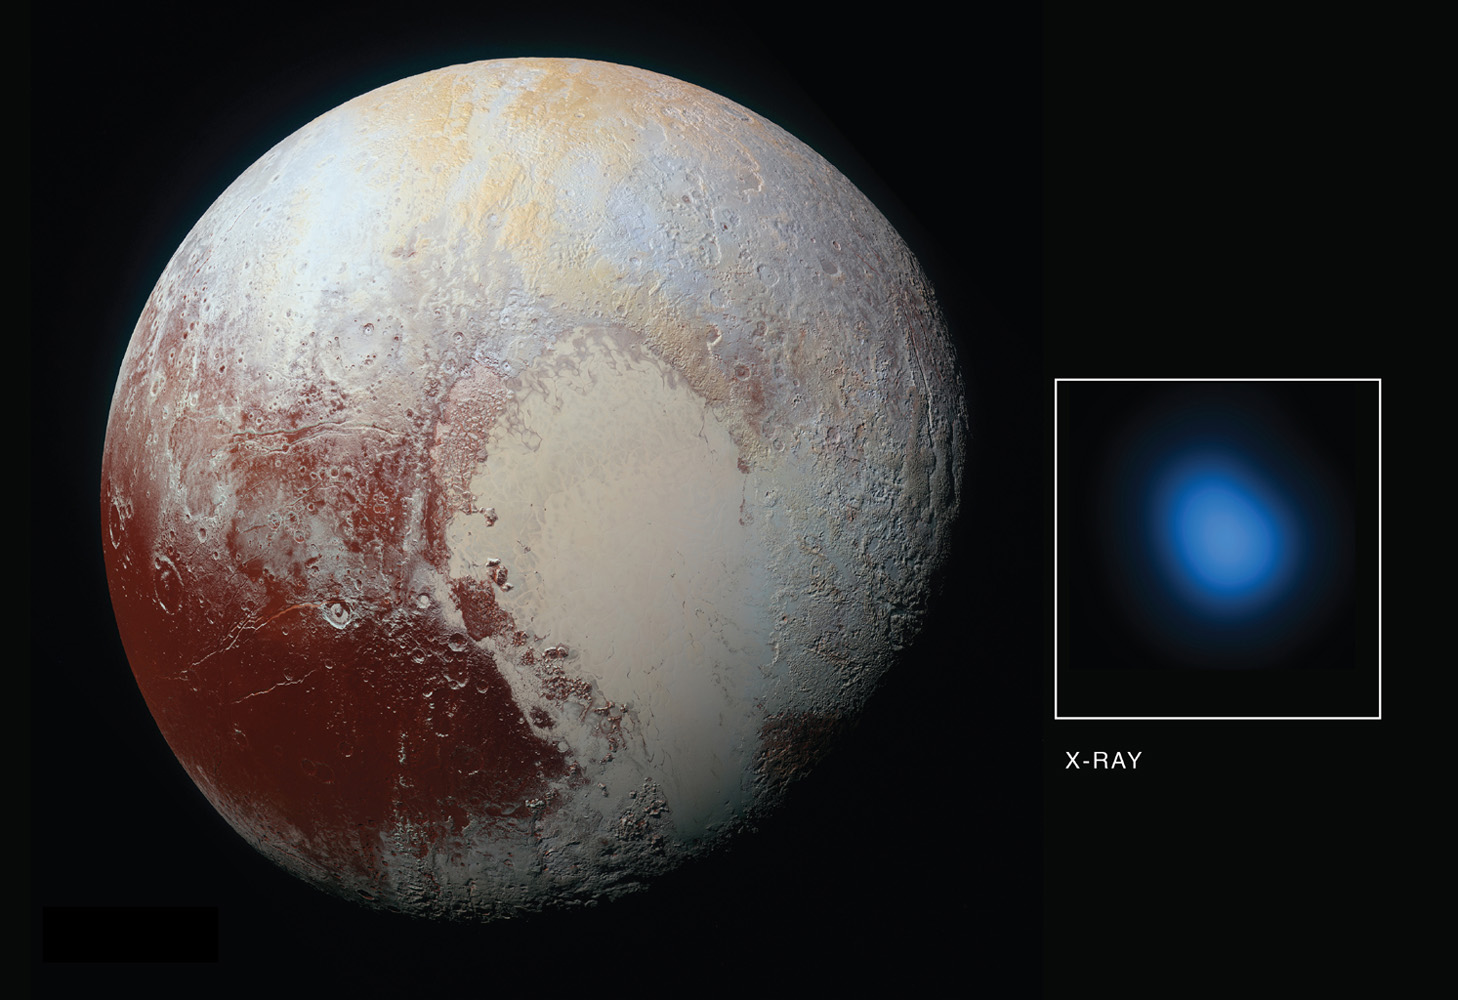 As NASA's New Horizons approached Pluto in late 2014 and then flew by the planet during the summer of 2015, NASA's Chandra obtained data during four separate observations. During each observation, Chandra detected low-energy X-rays from the small planet.